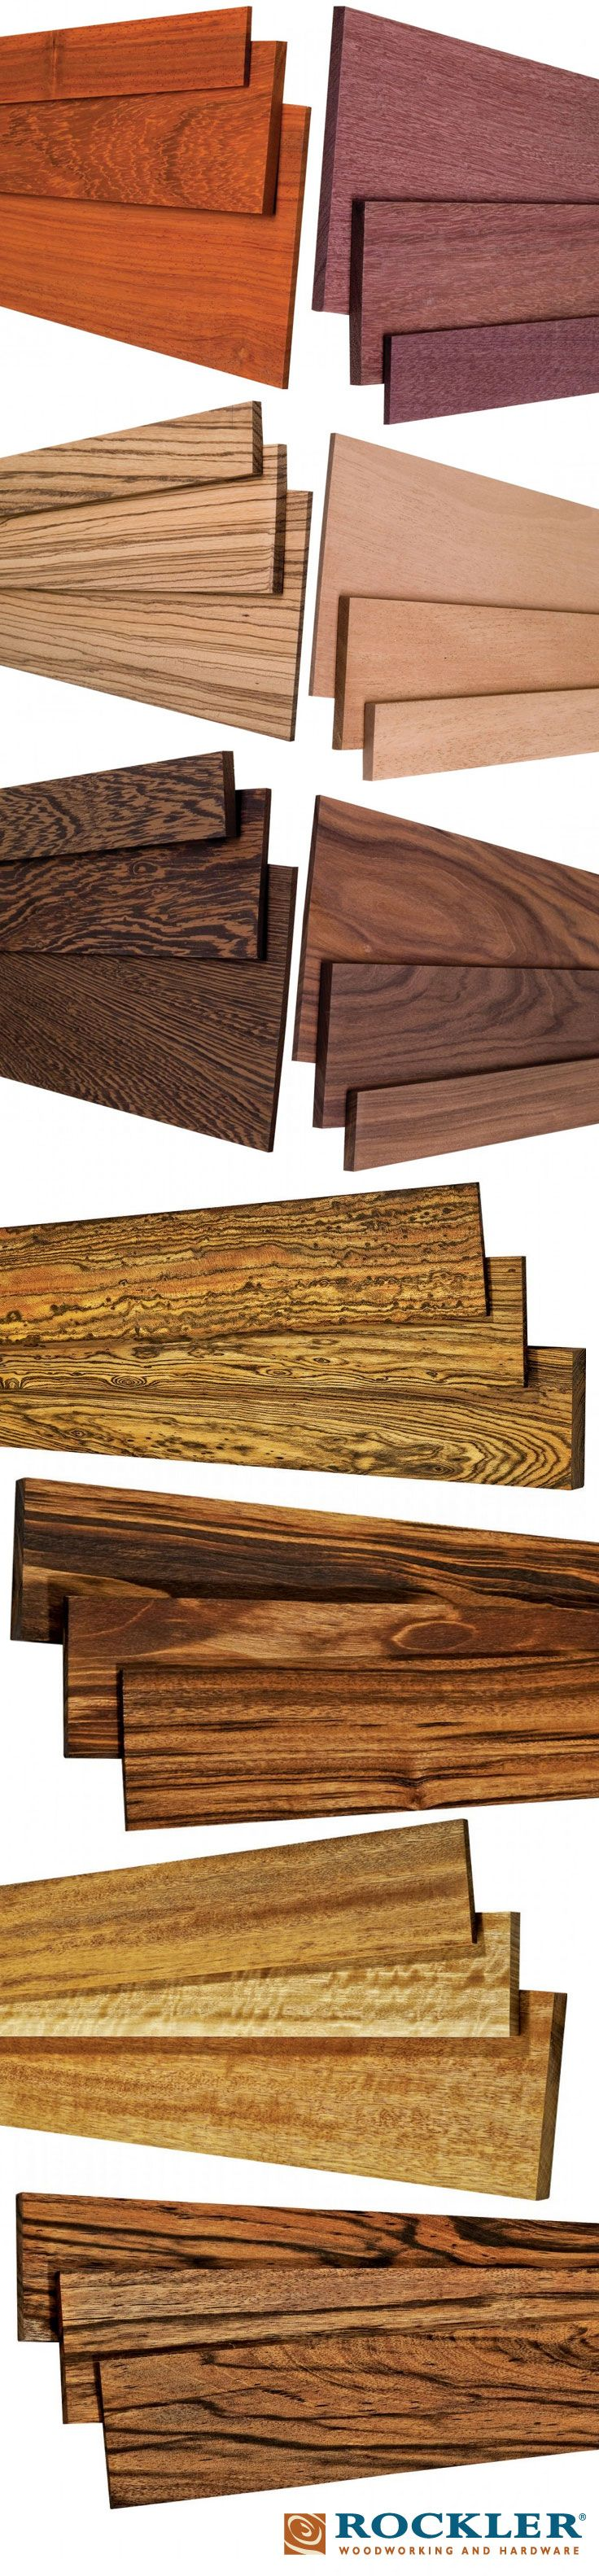 Natural beauty. Check out the unfinished nature of these different wood species here: http://www.rockler.com/wood/exotic-lumber - All responsibly sourced because woodworking is our passion.